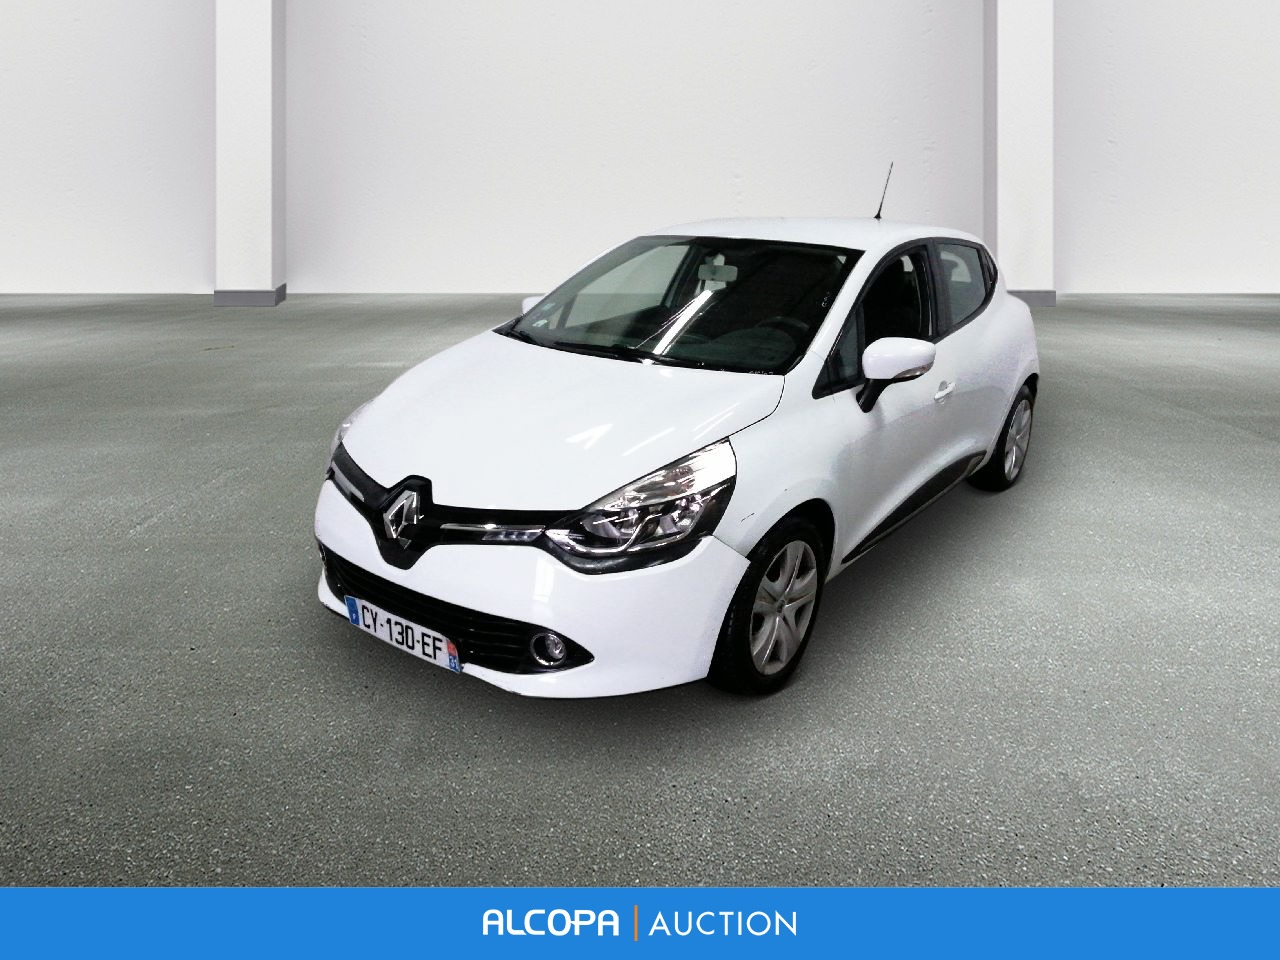 renault clio iv clio iv tce 90 energy eco2 zen tours alcopa auction. Black Bedroom Furniture Sets. Home Design Ideas